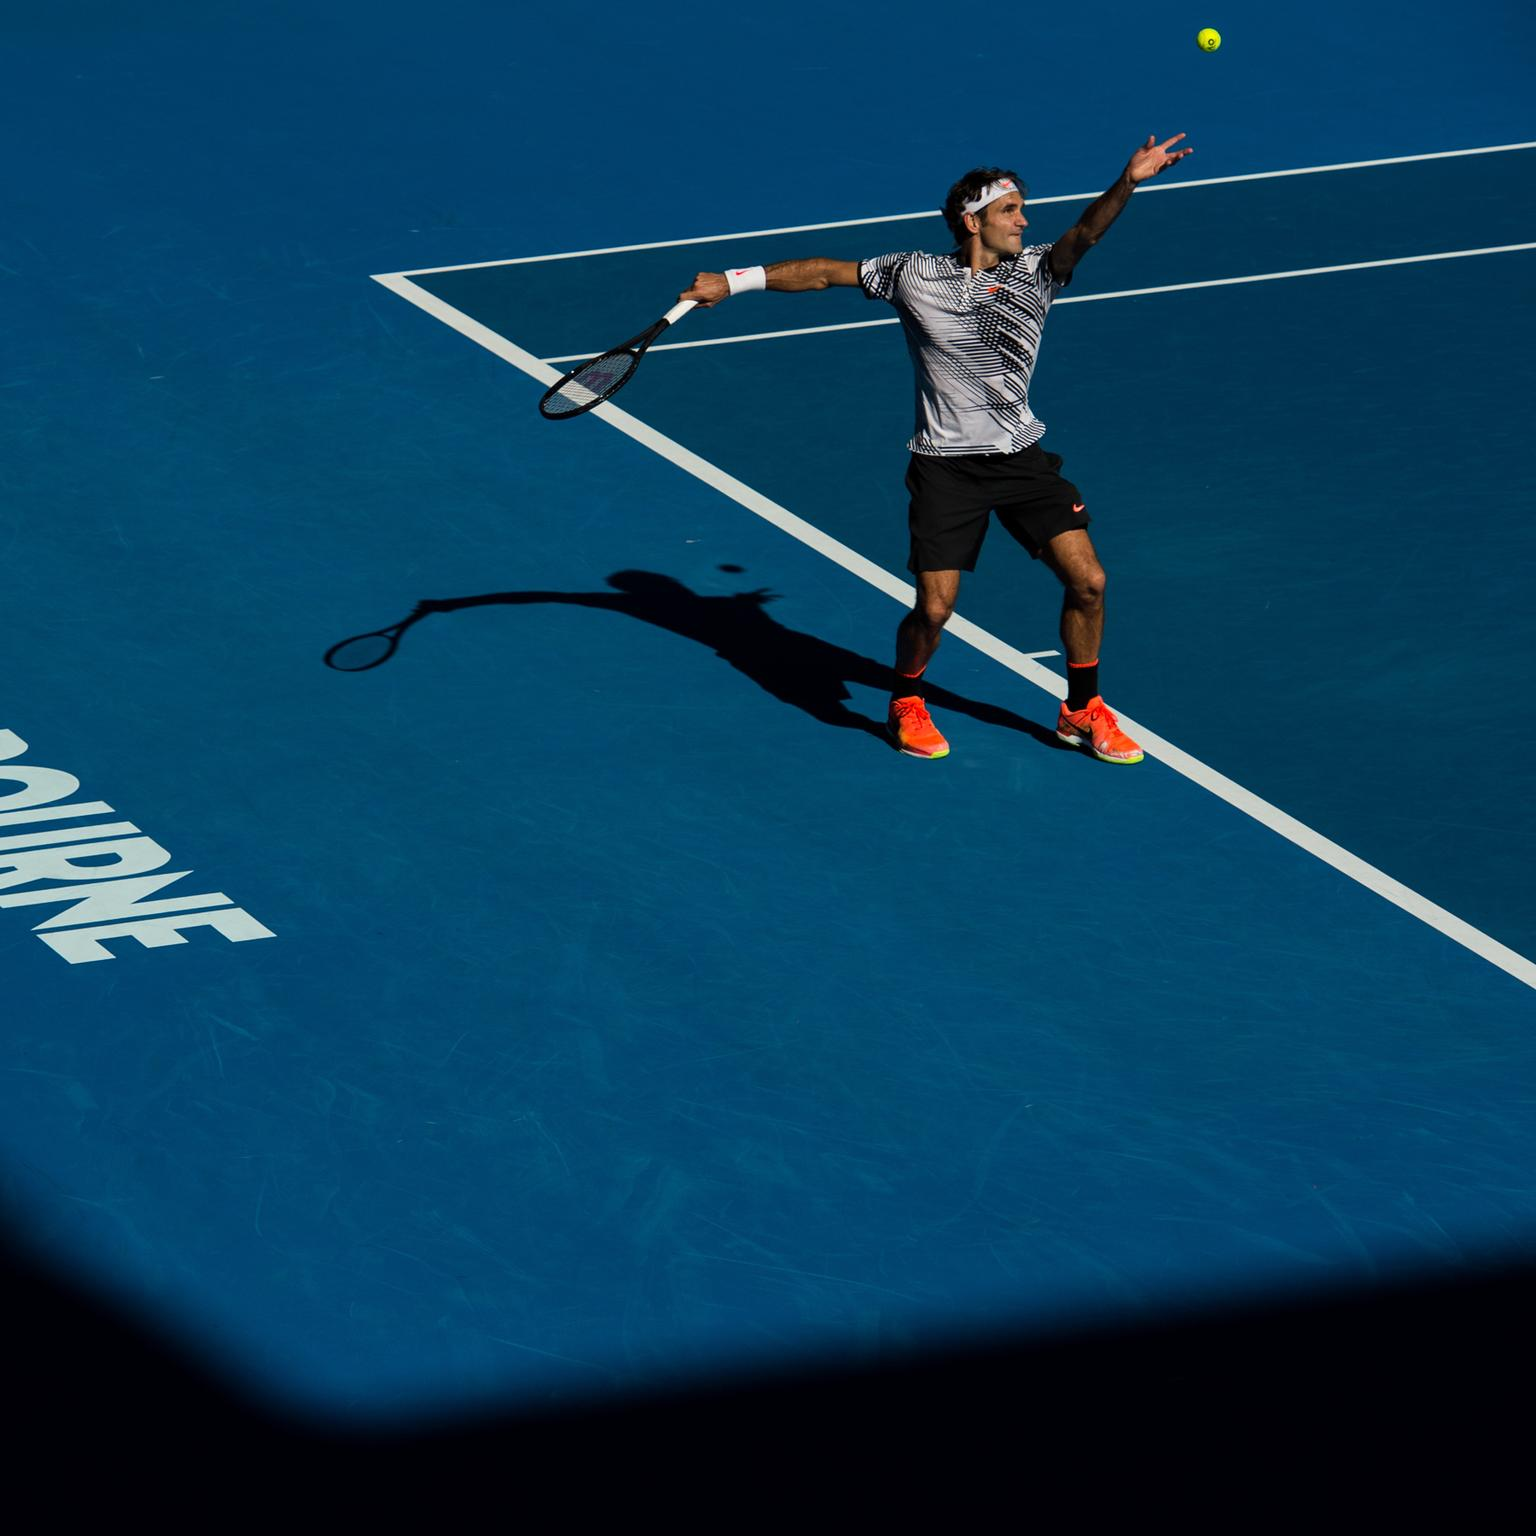 Roger Federer wins the 2017 Australian Open tennis championship